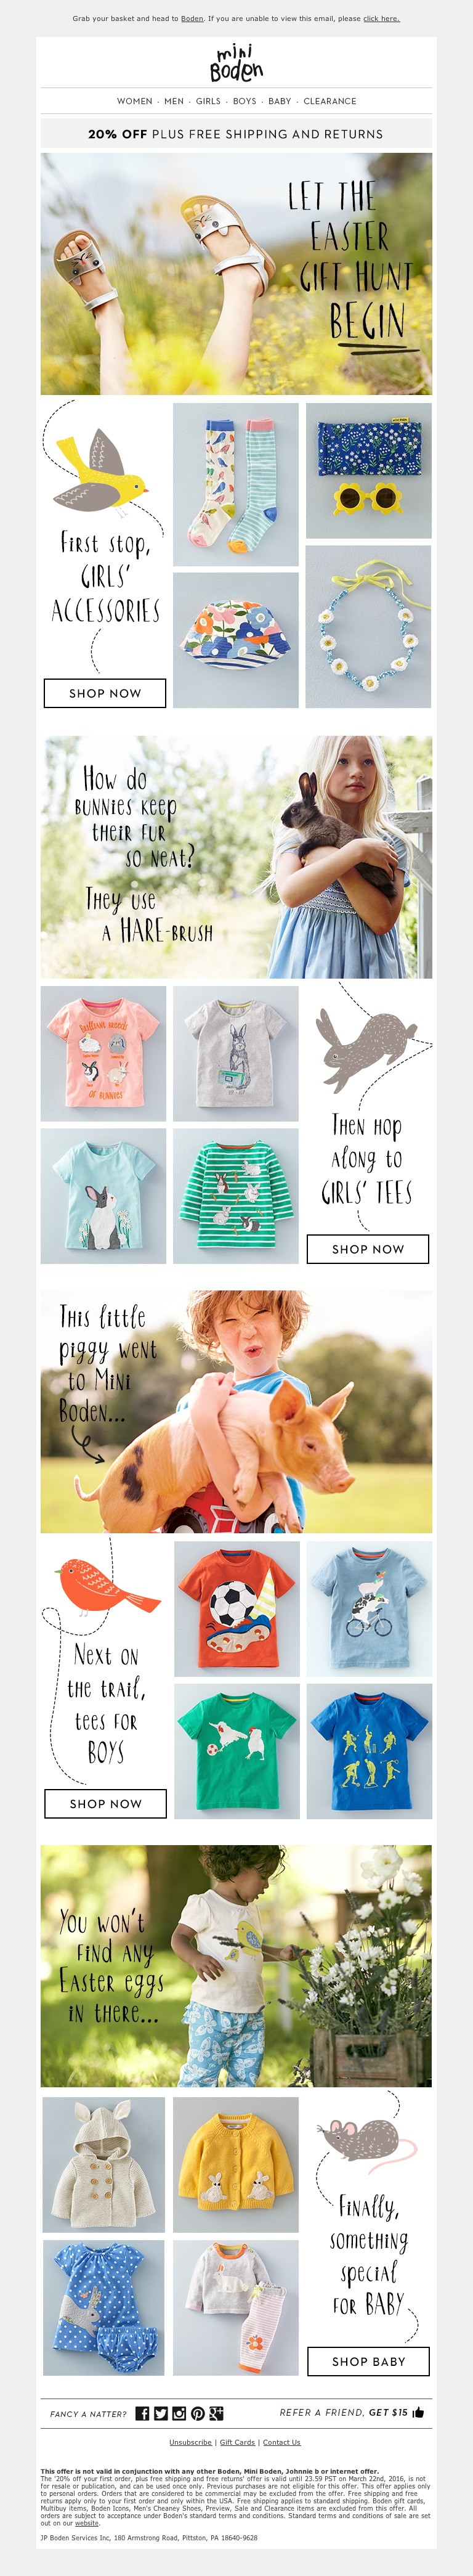 Boden on the hunt for easter gifts email campaigns pinterest boden on the hunt for easter gifts negle Gallery